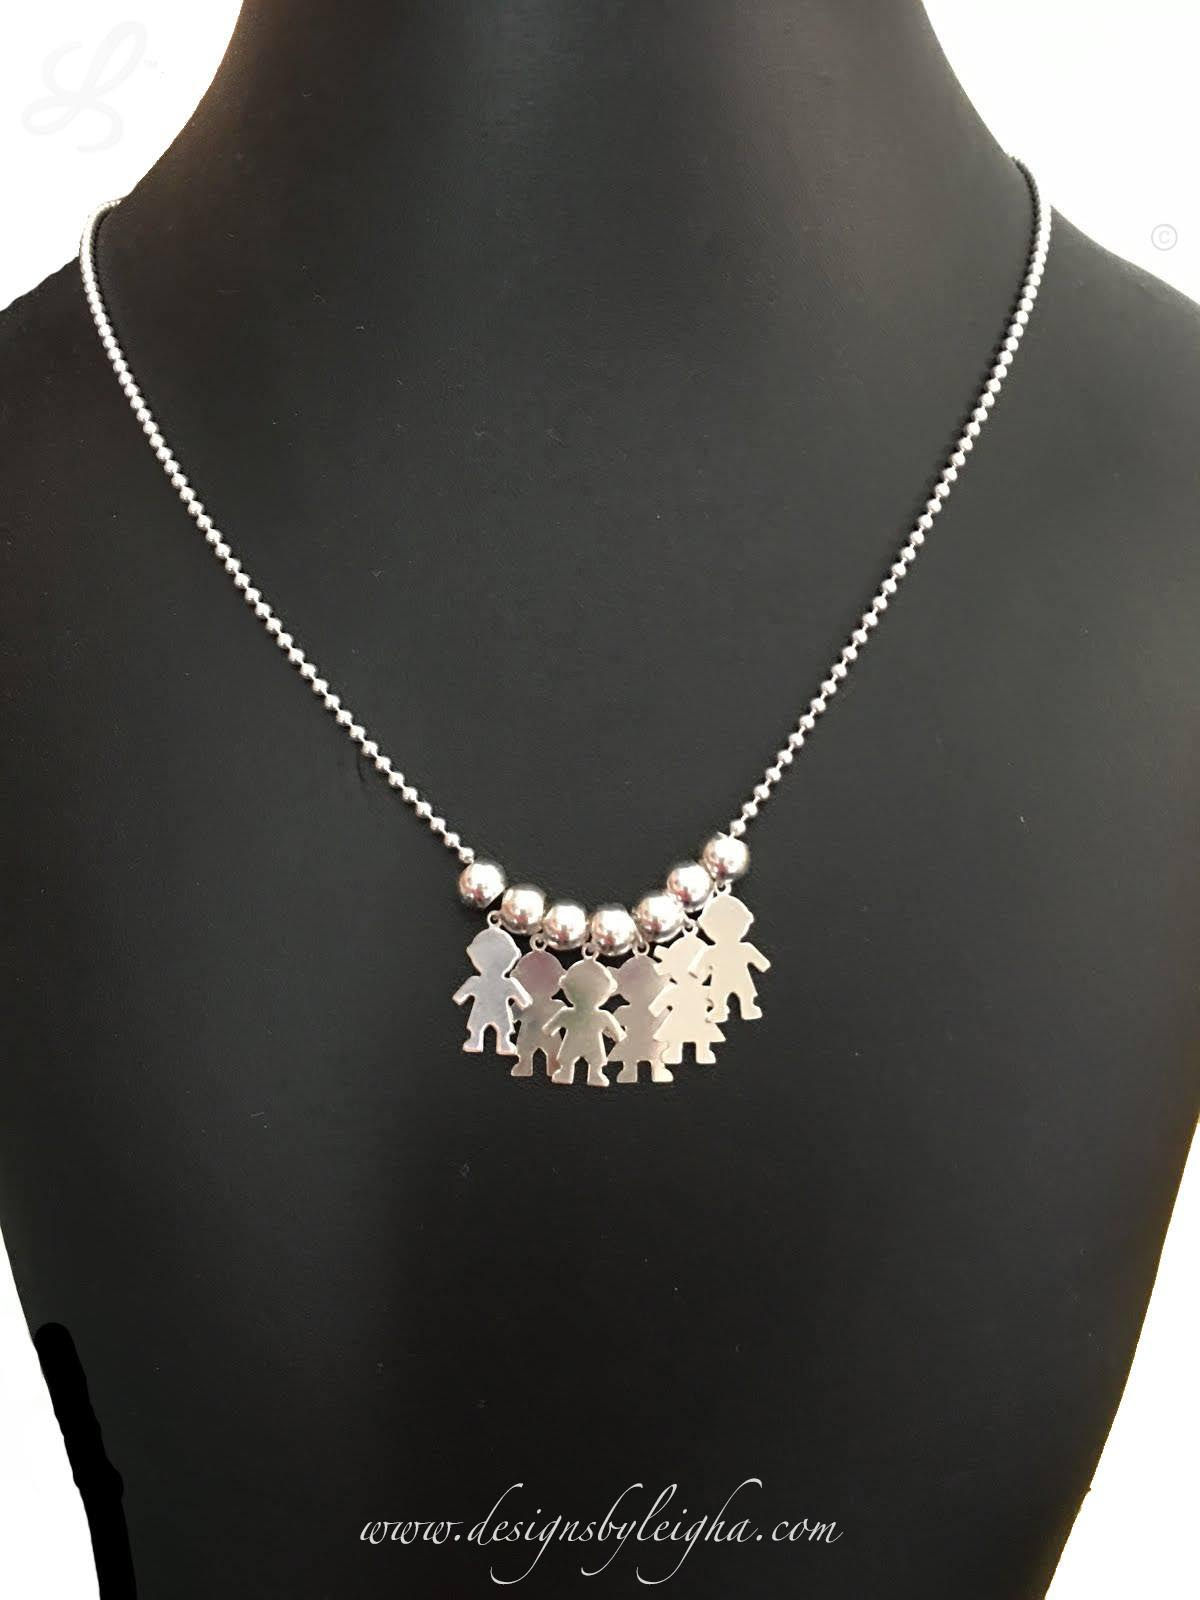 Boy and Girl Charm Necklace with 6 boy and girl charms - DBL-BN-N6